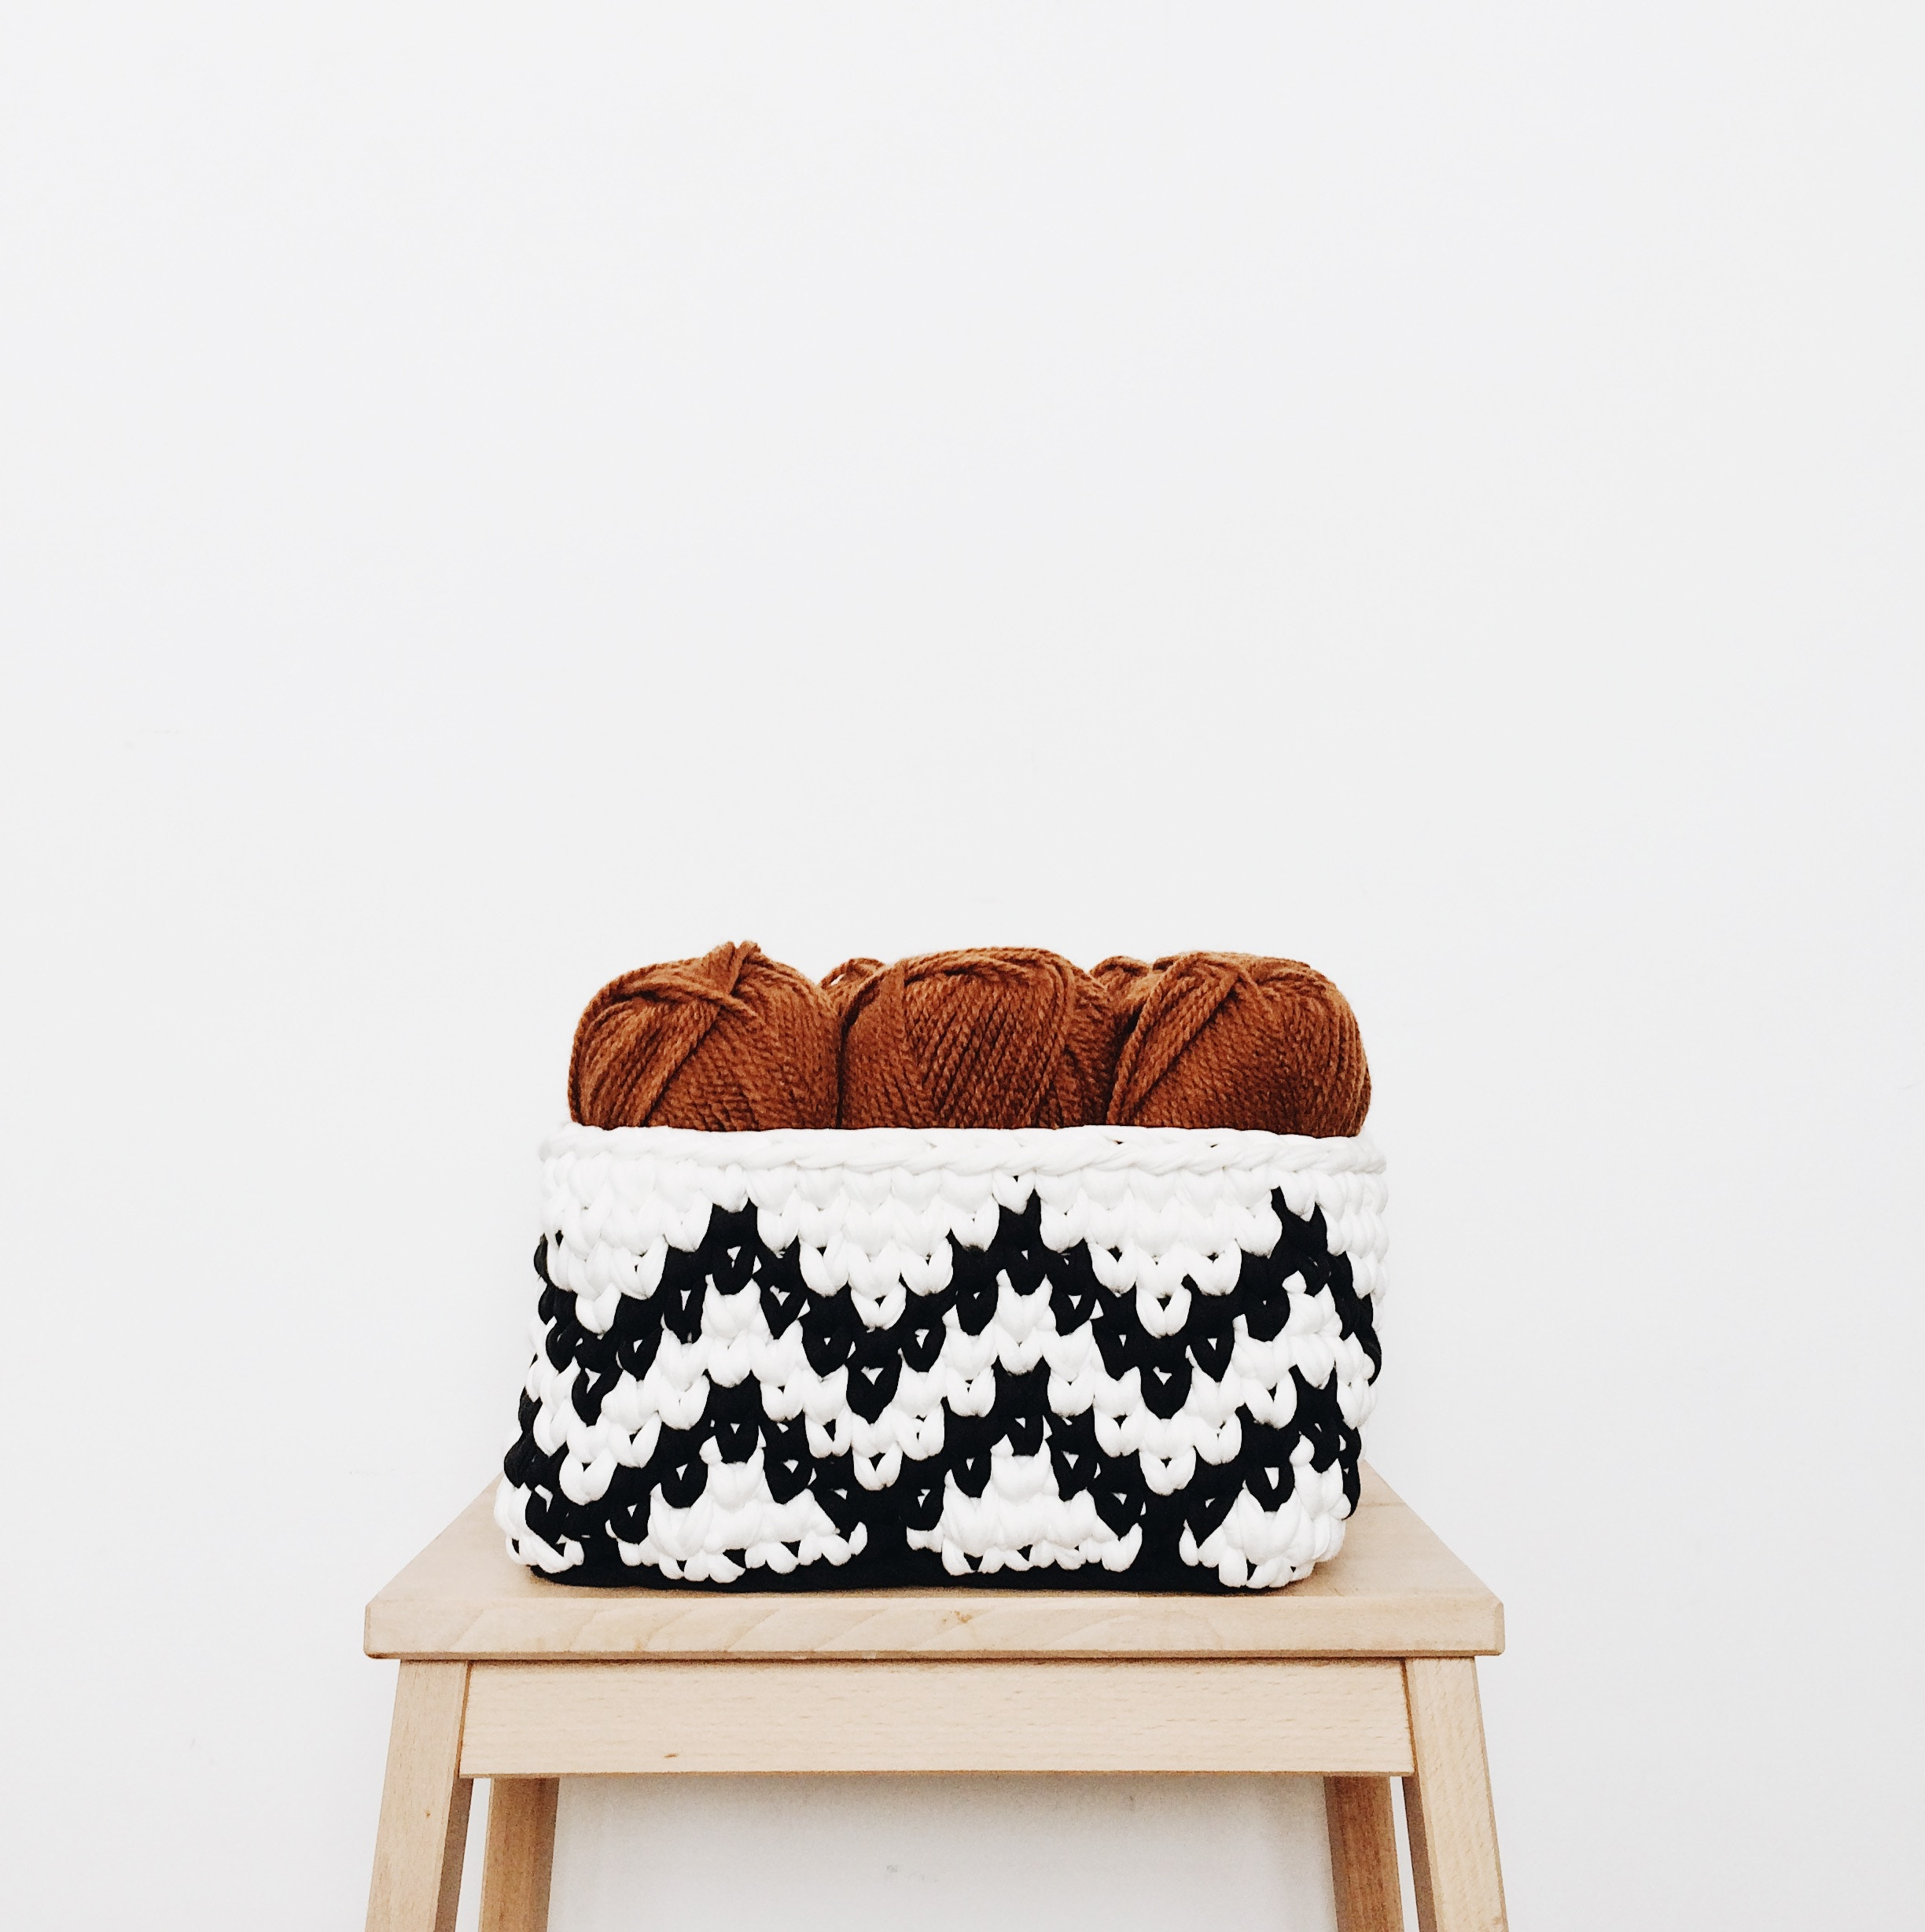 7-Day Learn to Crochet Challenge